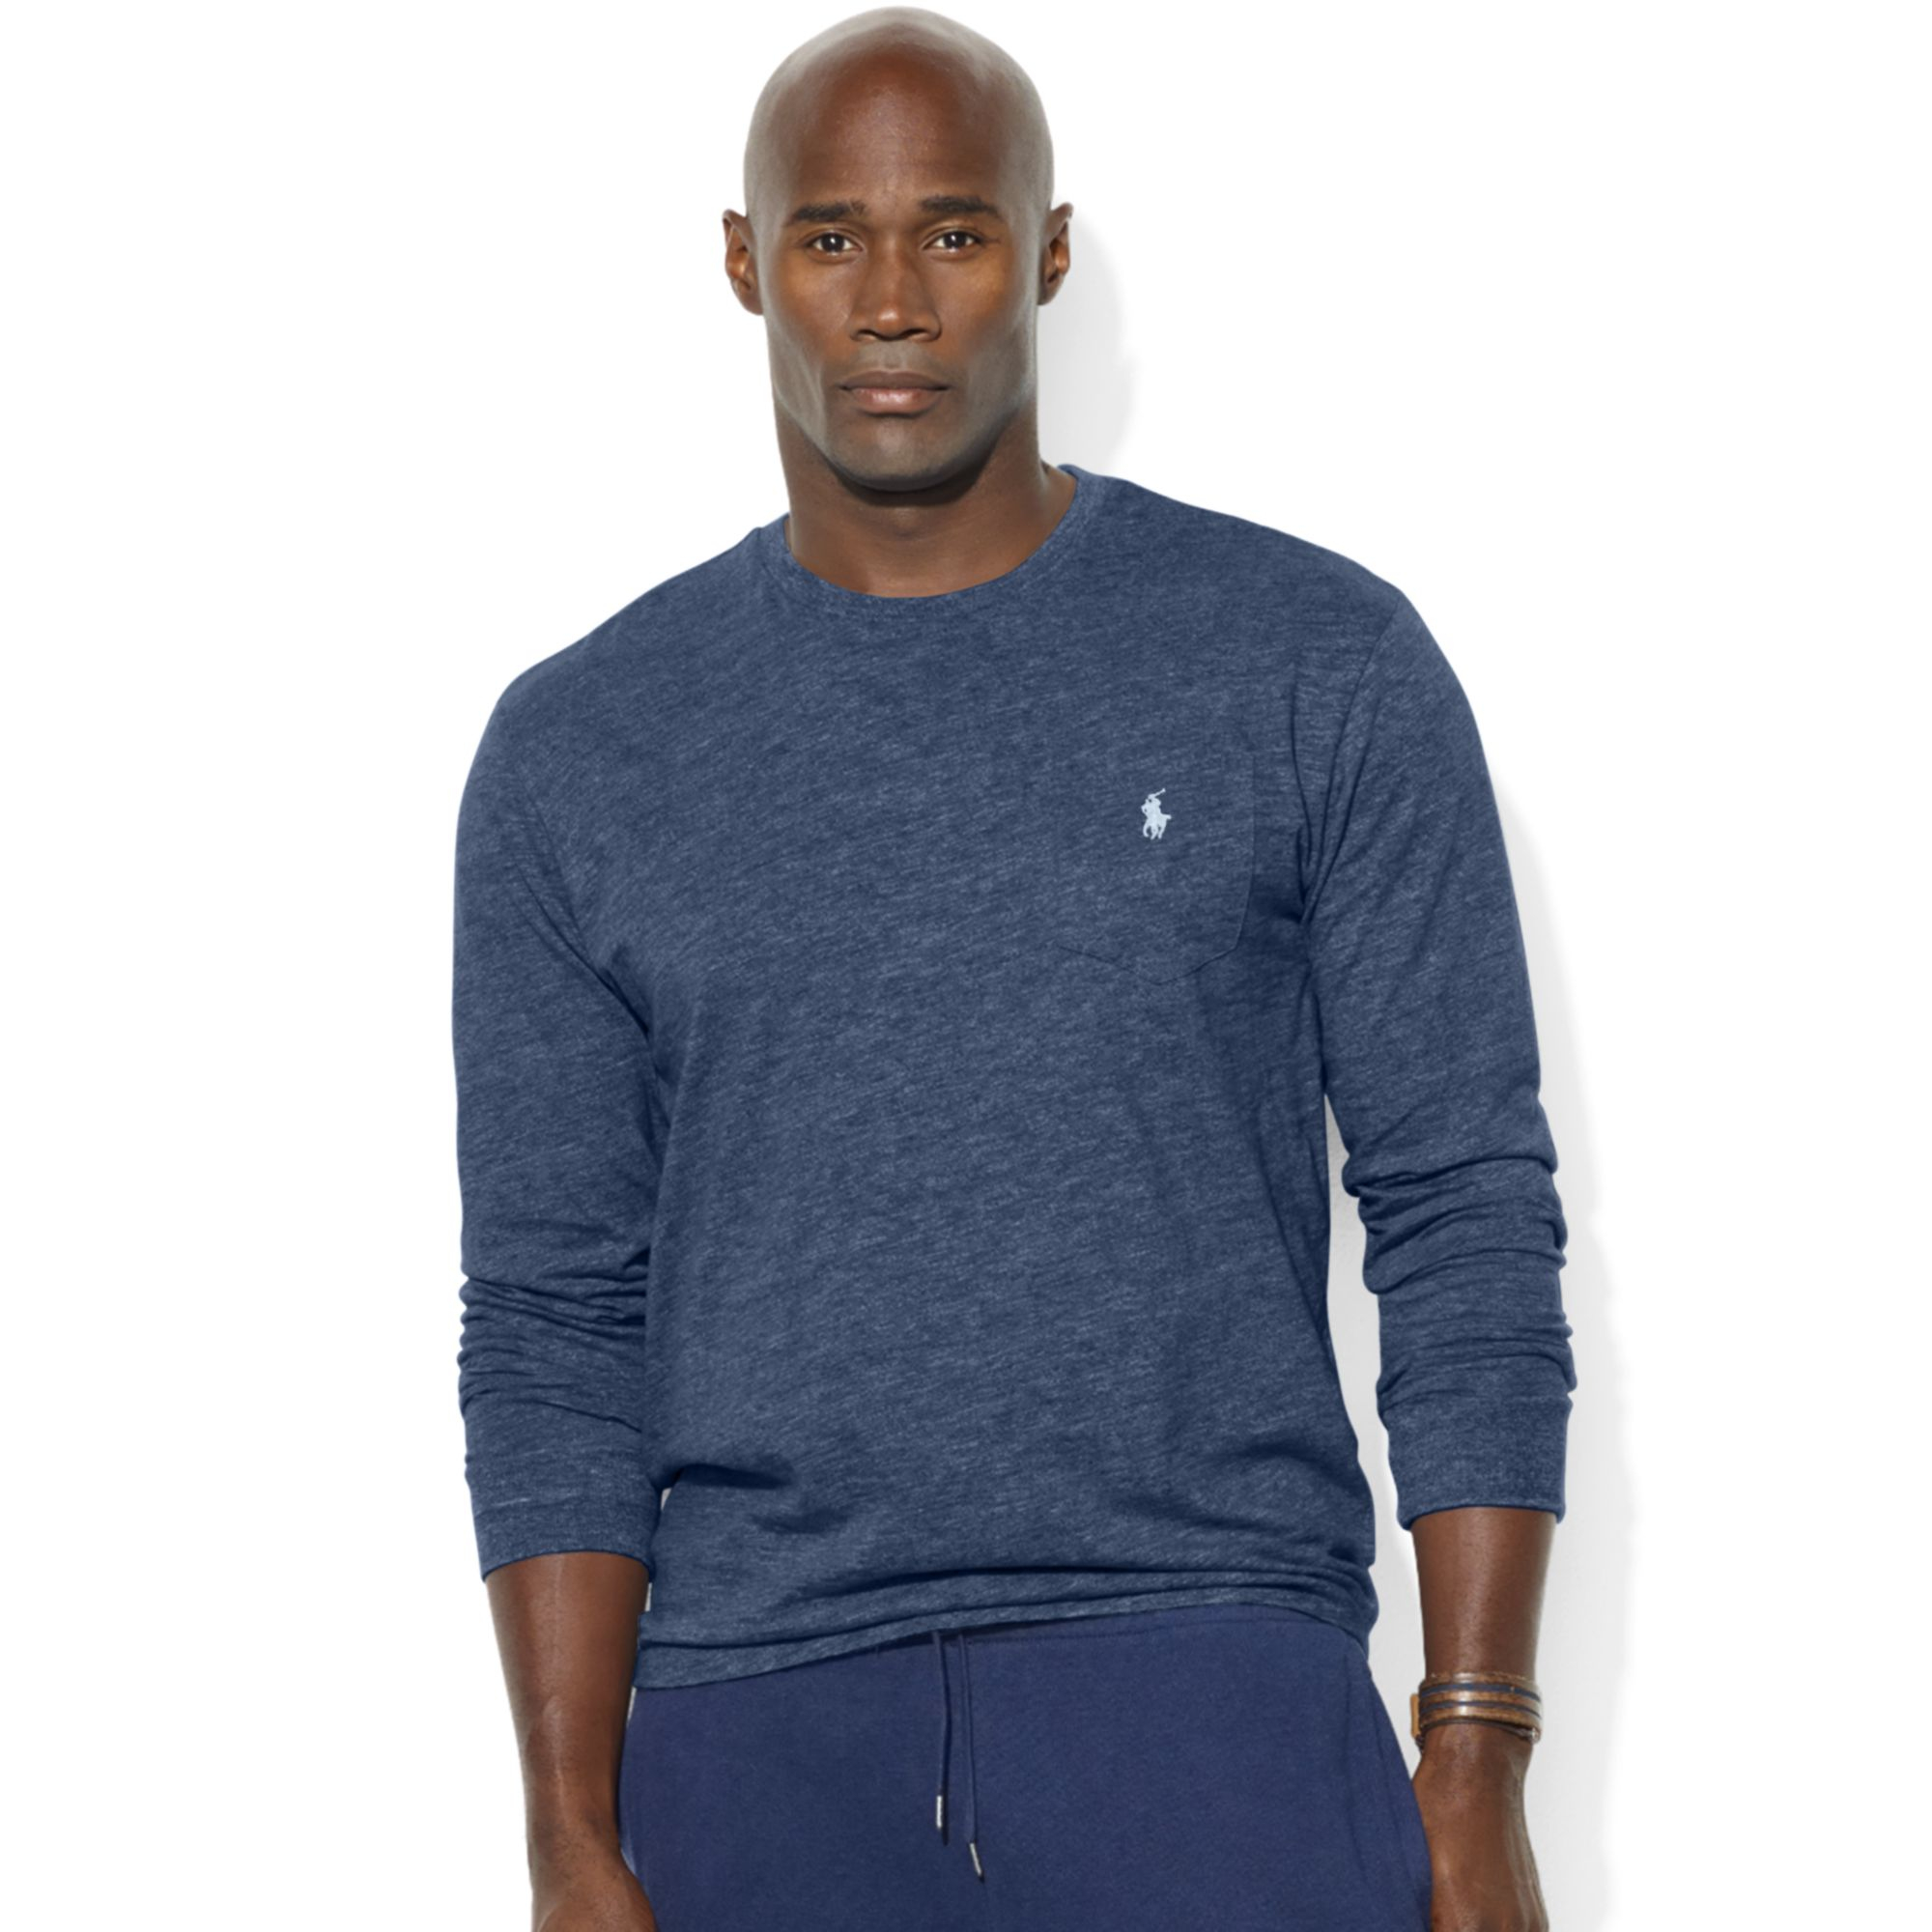 Ralph lauren classicfit longsleeve pocket crew neck cotton for Big and tall polo shirts with pockets